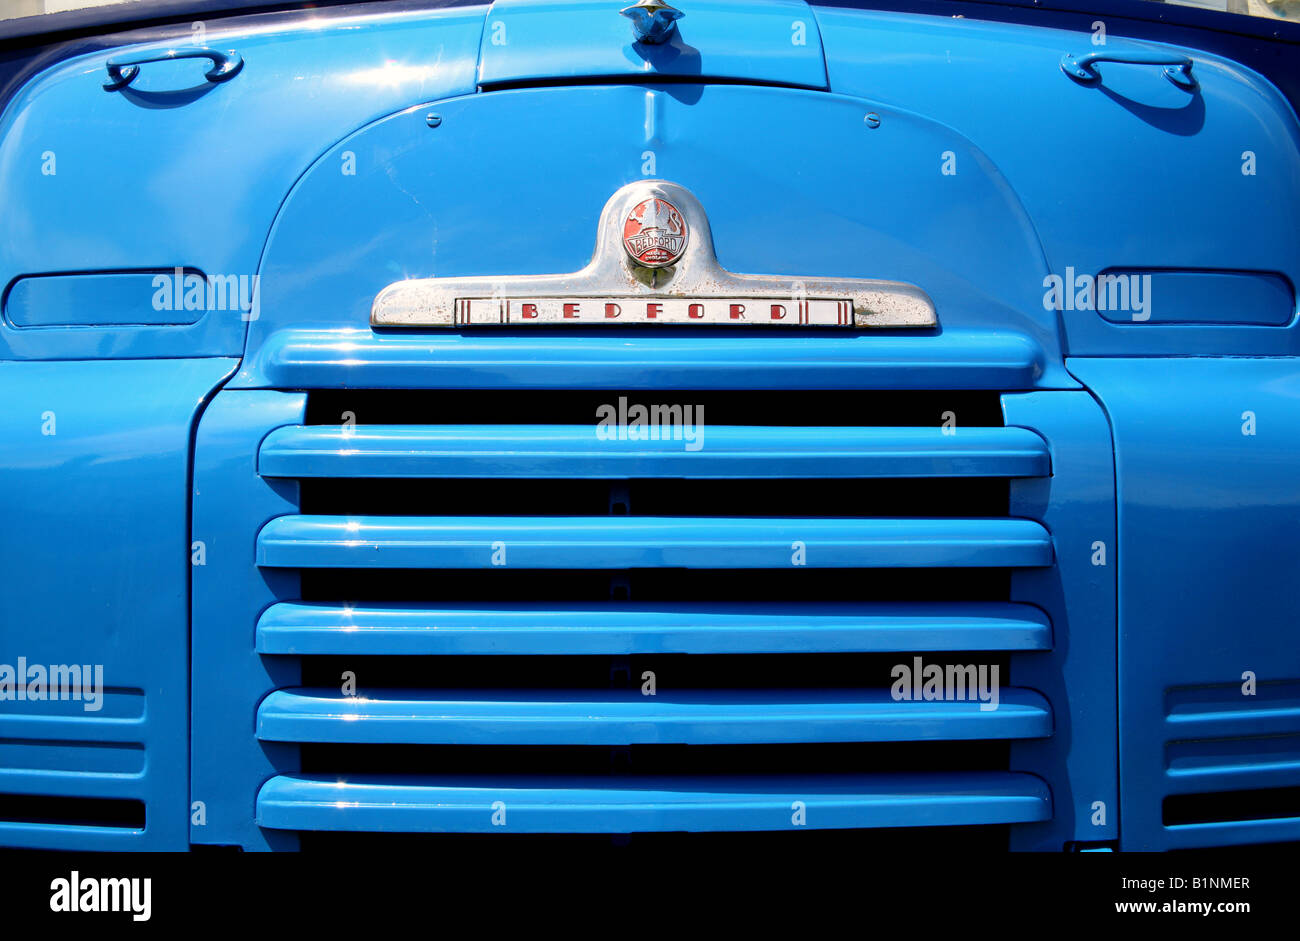 Detail of vintage Bedford truck - Stock Image